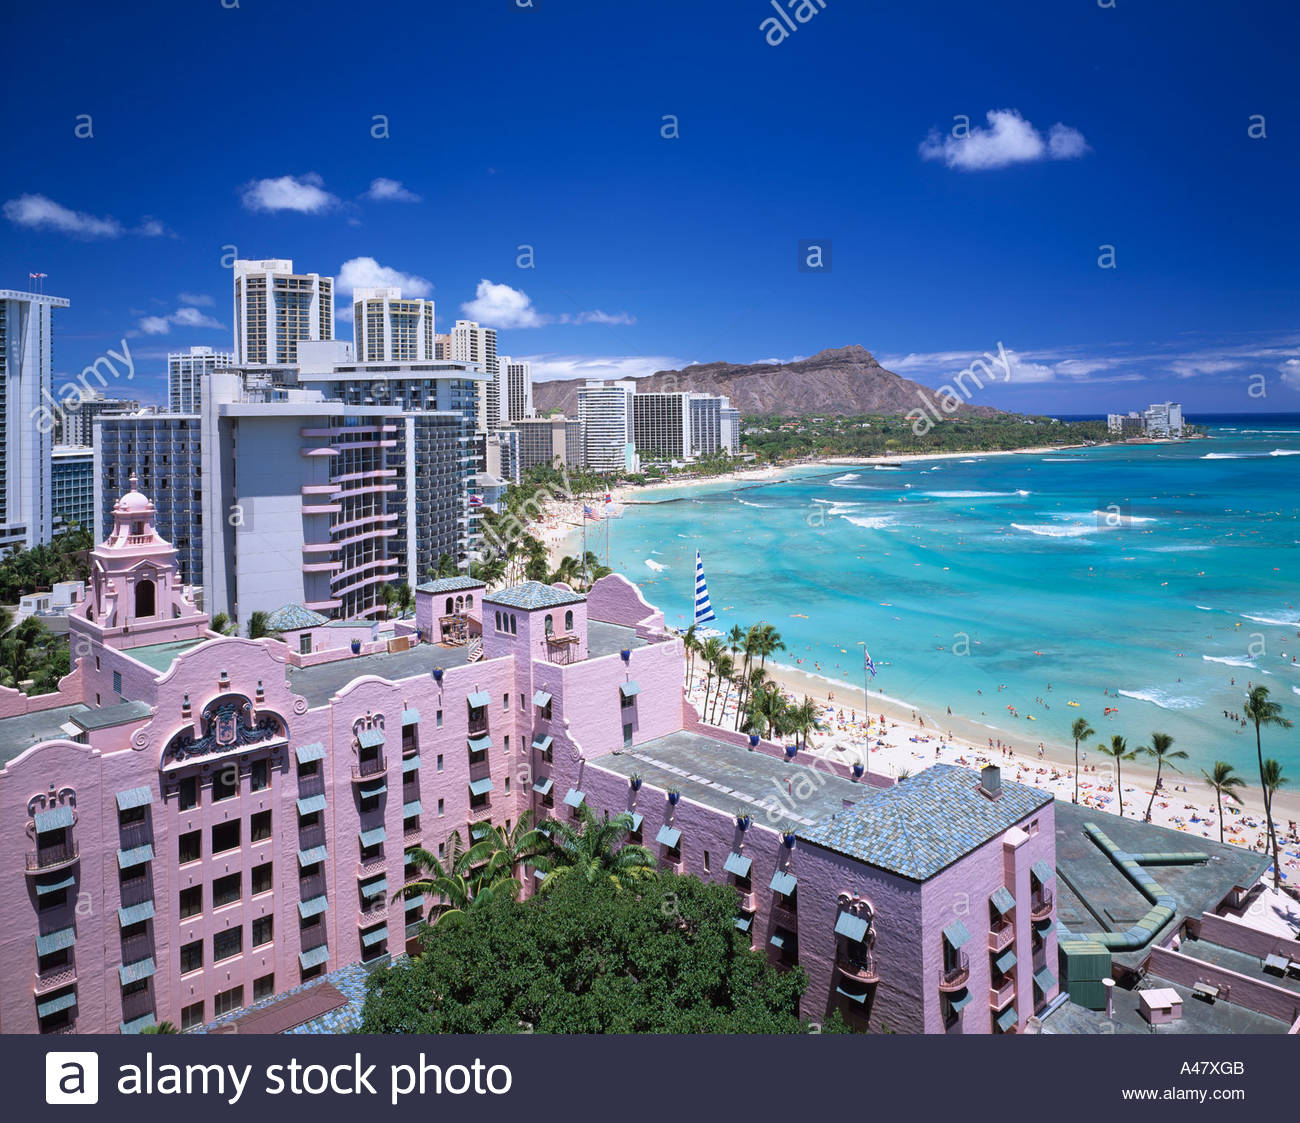 Sheraton Diamond Head Waikiki Beach Oahu Hawaii United States Of - Sheraton hawaii